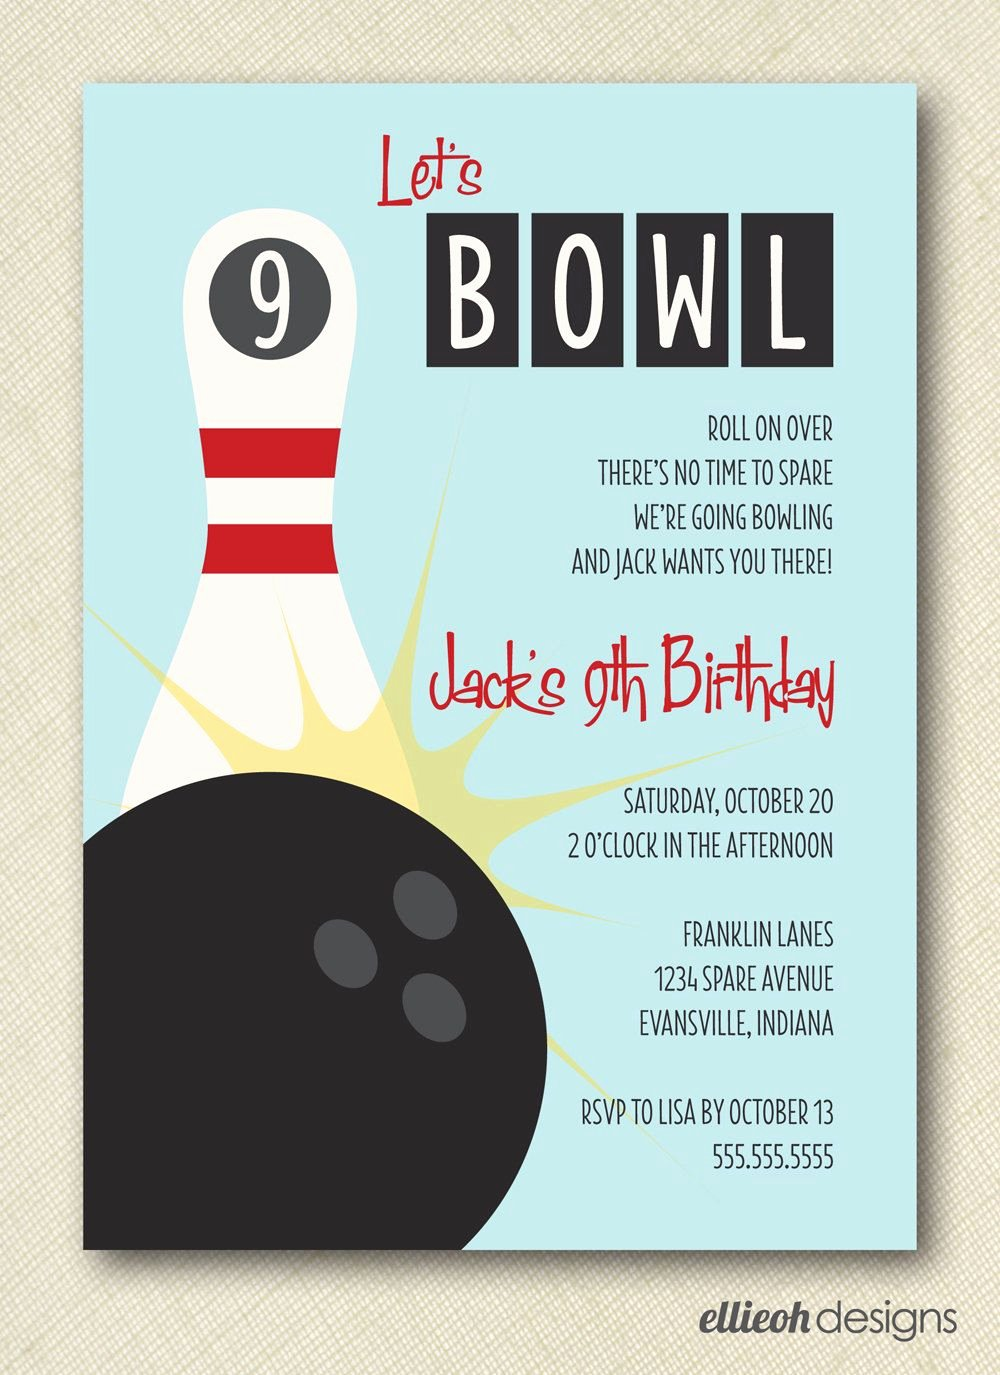 Bowling Invitations Free Template Luxury Retro Inspired Let S Bowl Bowling Birthday